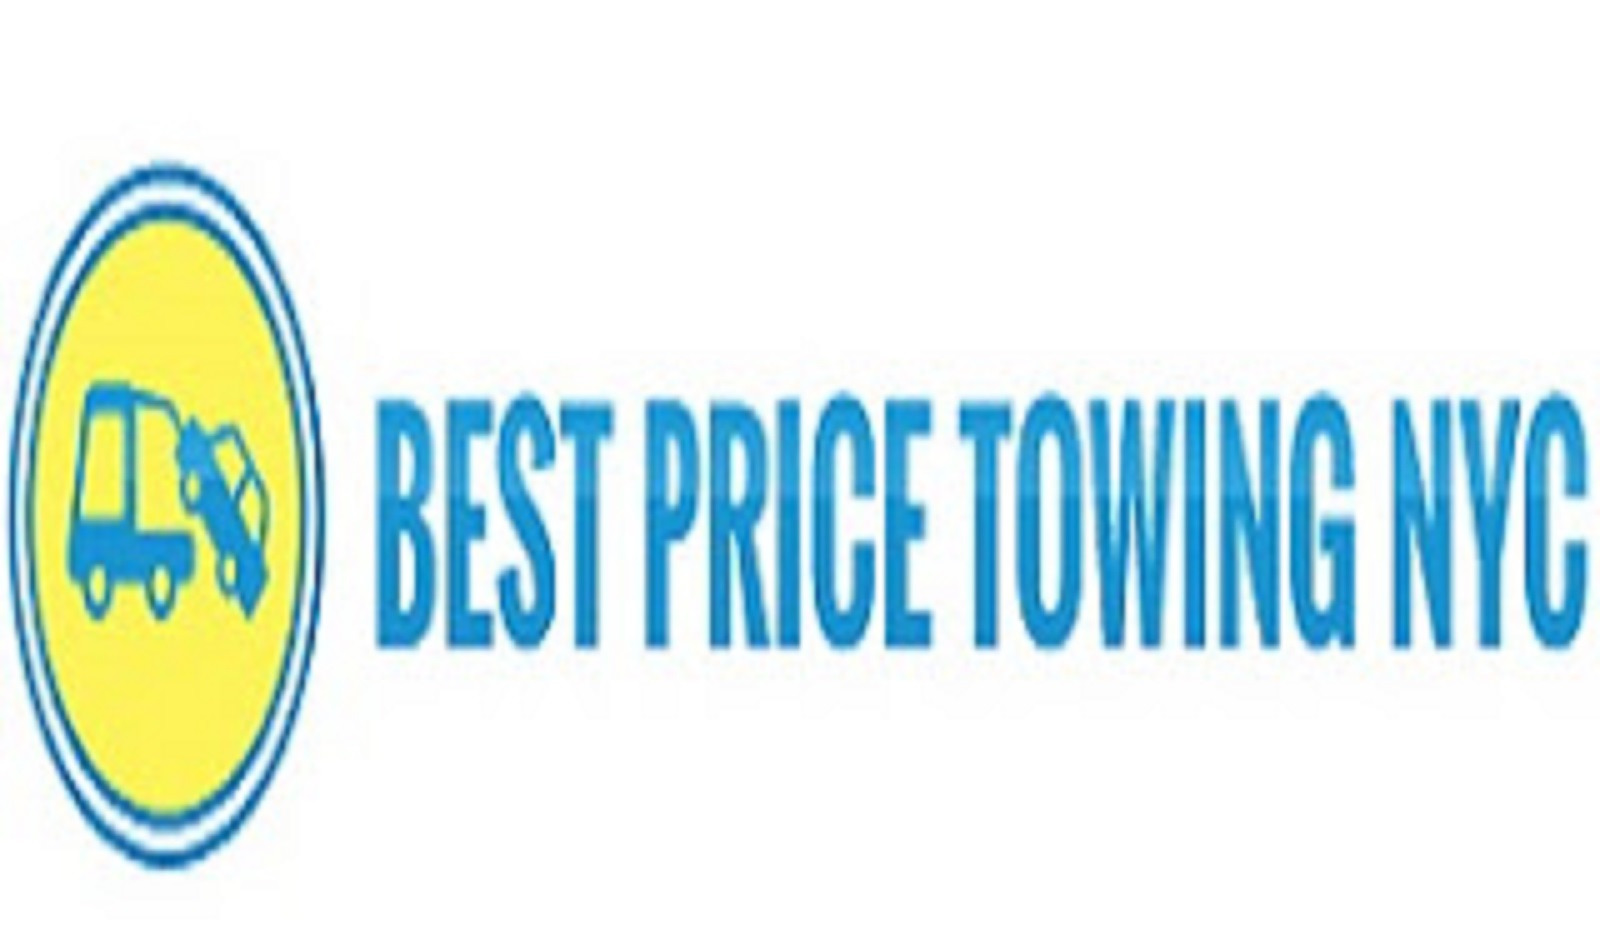 Best Price Towing